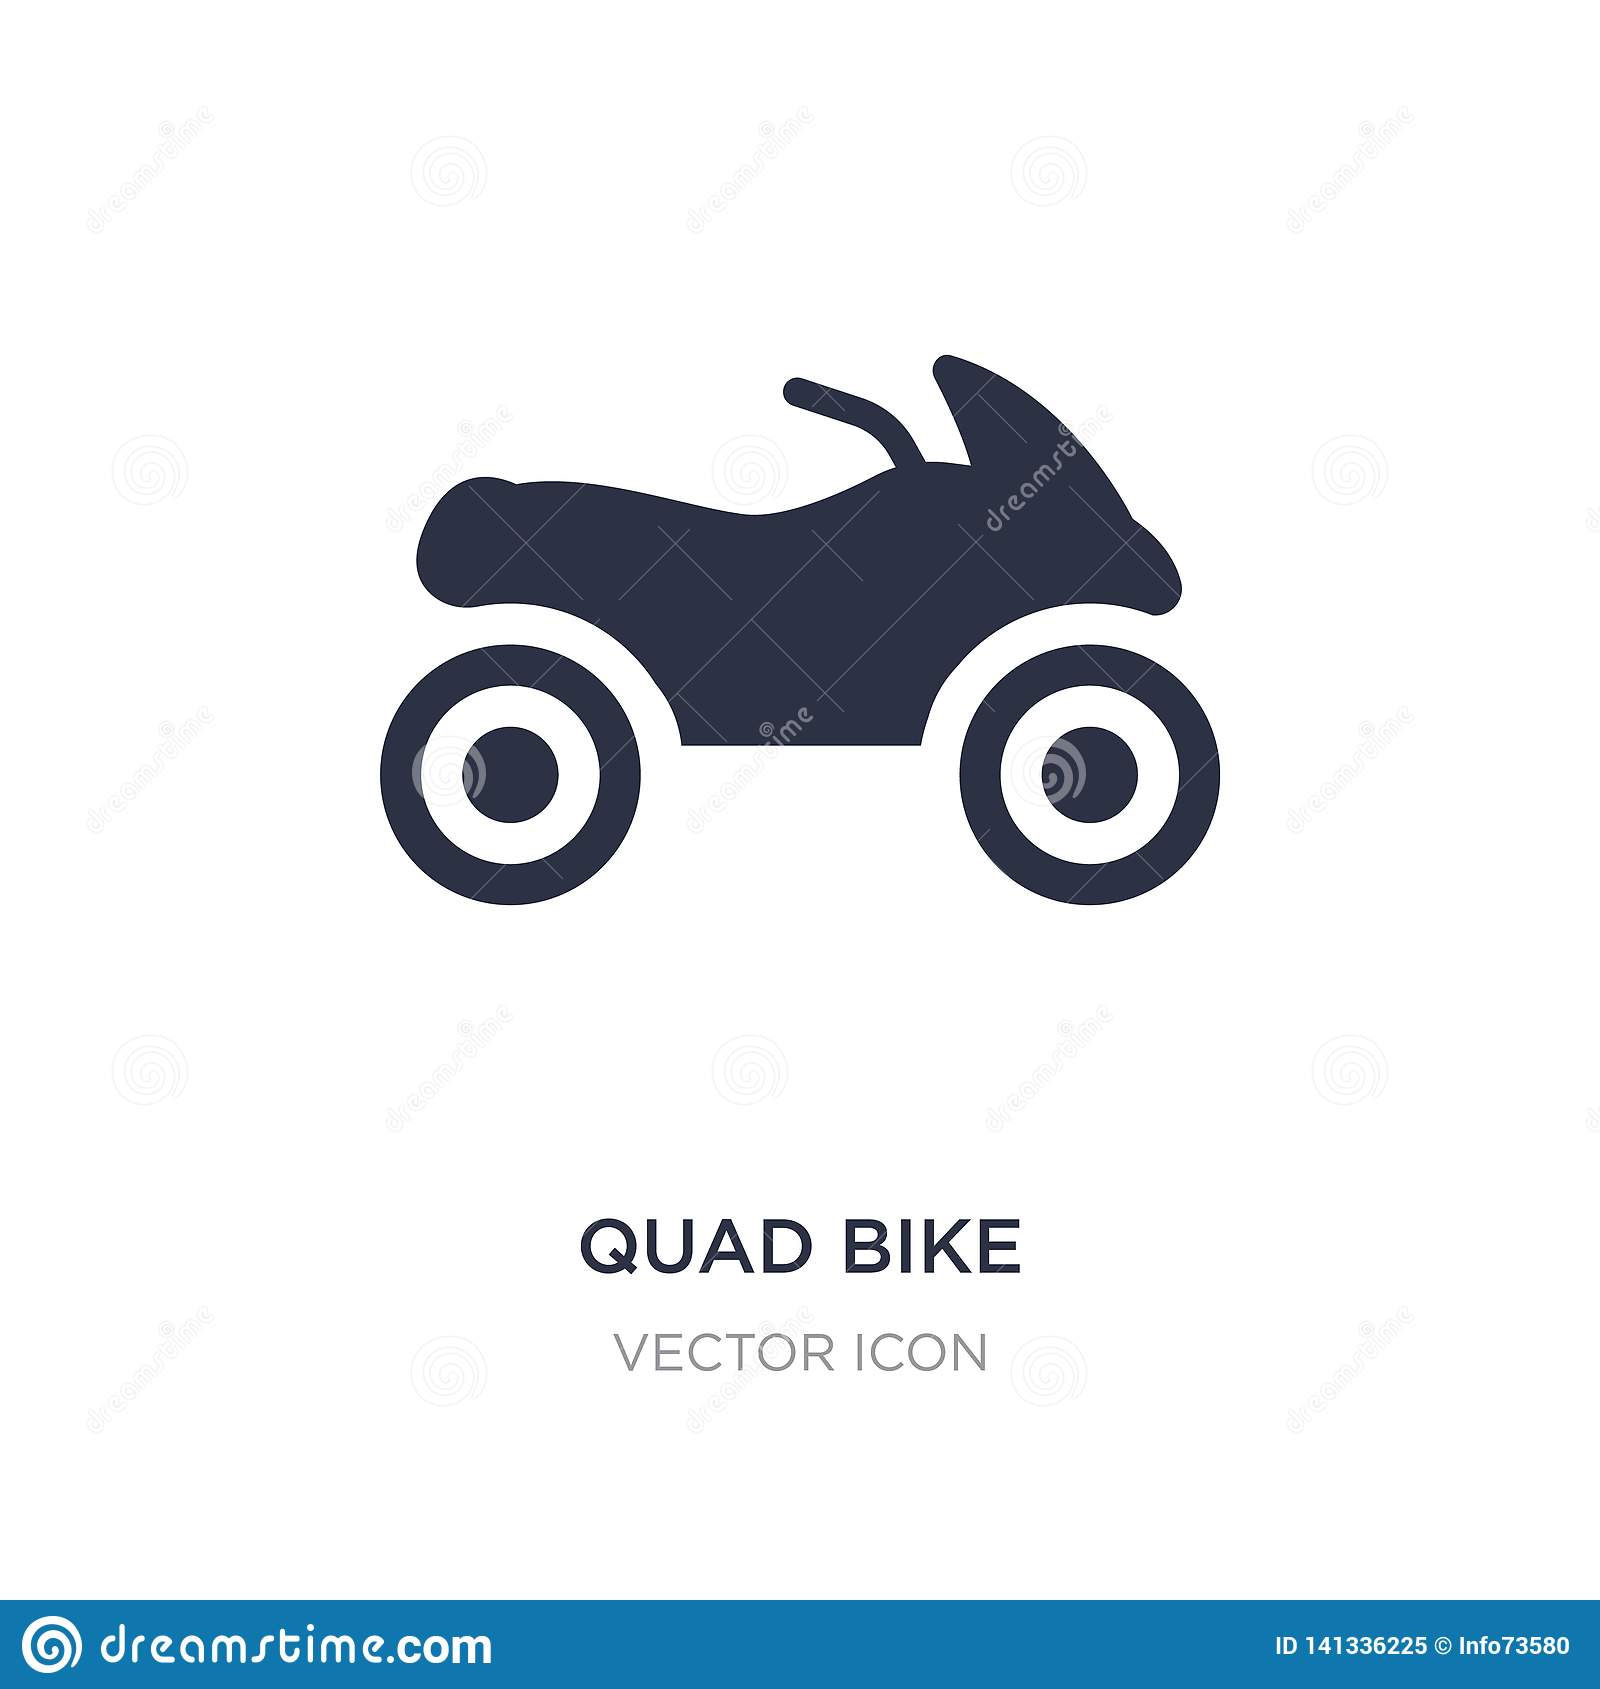 quad bike icon on white background. Simple element illustration from Transport concept